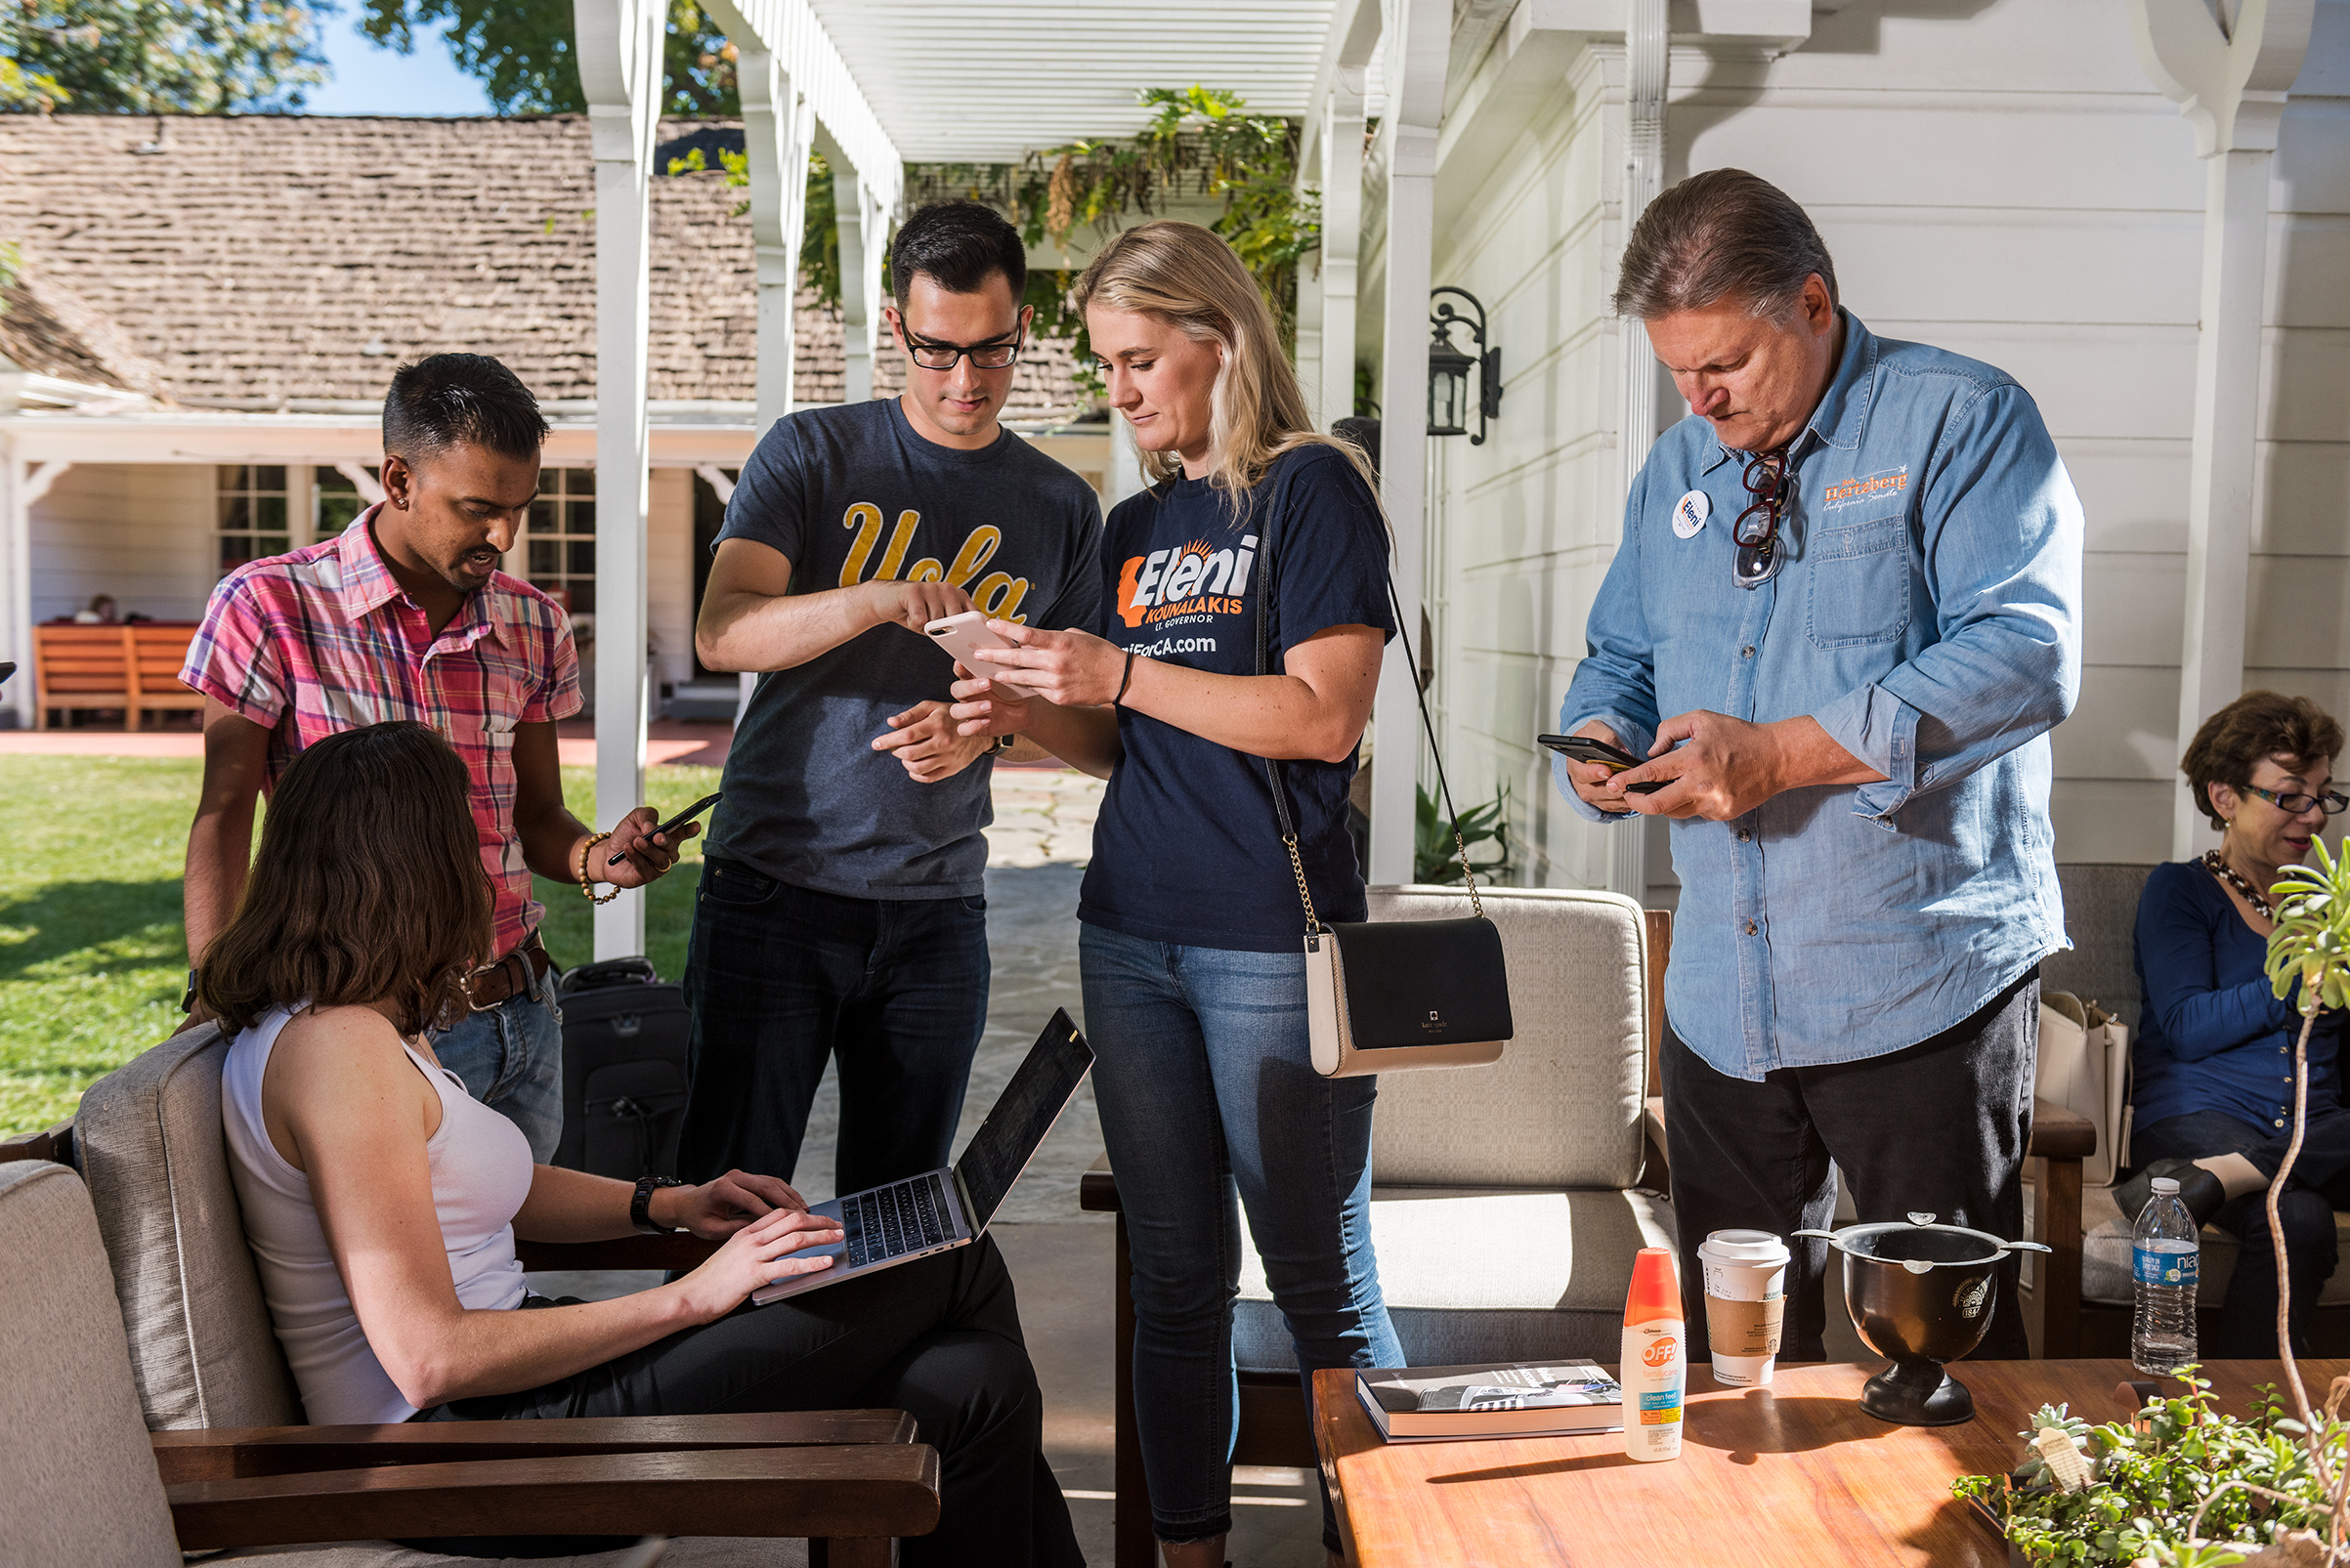 Volunteers attend a political  text bank  for California lieutenant governor candidate Eleni Kounalakis in Van Nuys, Calif., at the home of state Senator Robert Hertzberg on Oct. 20, 2018.